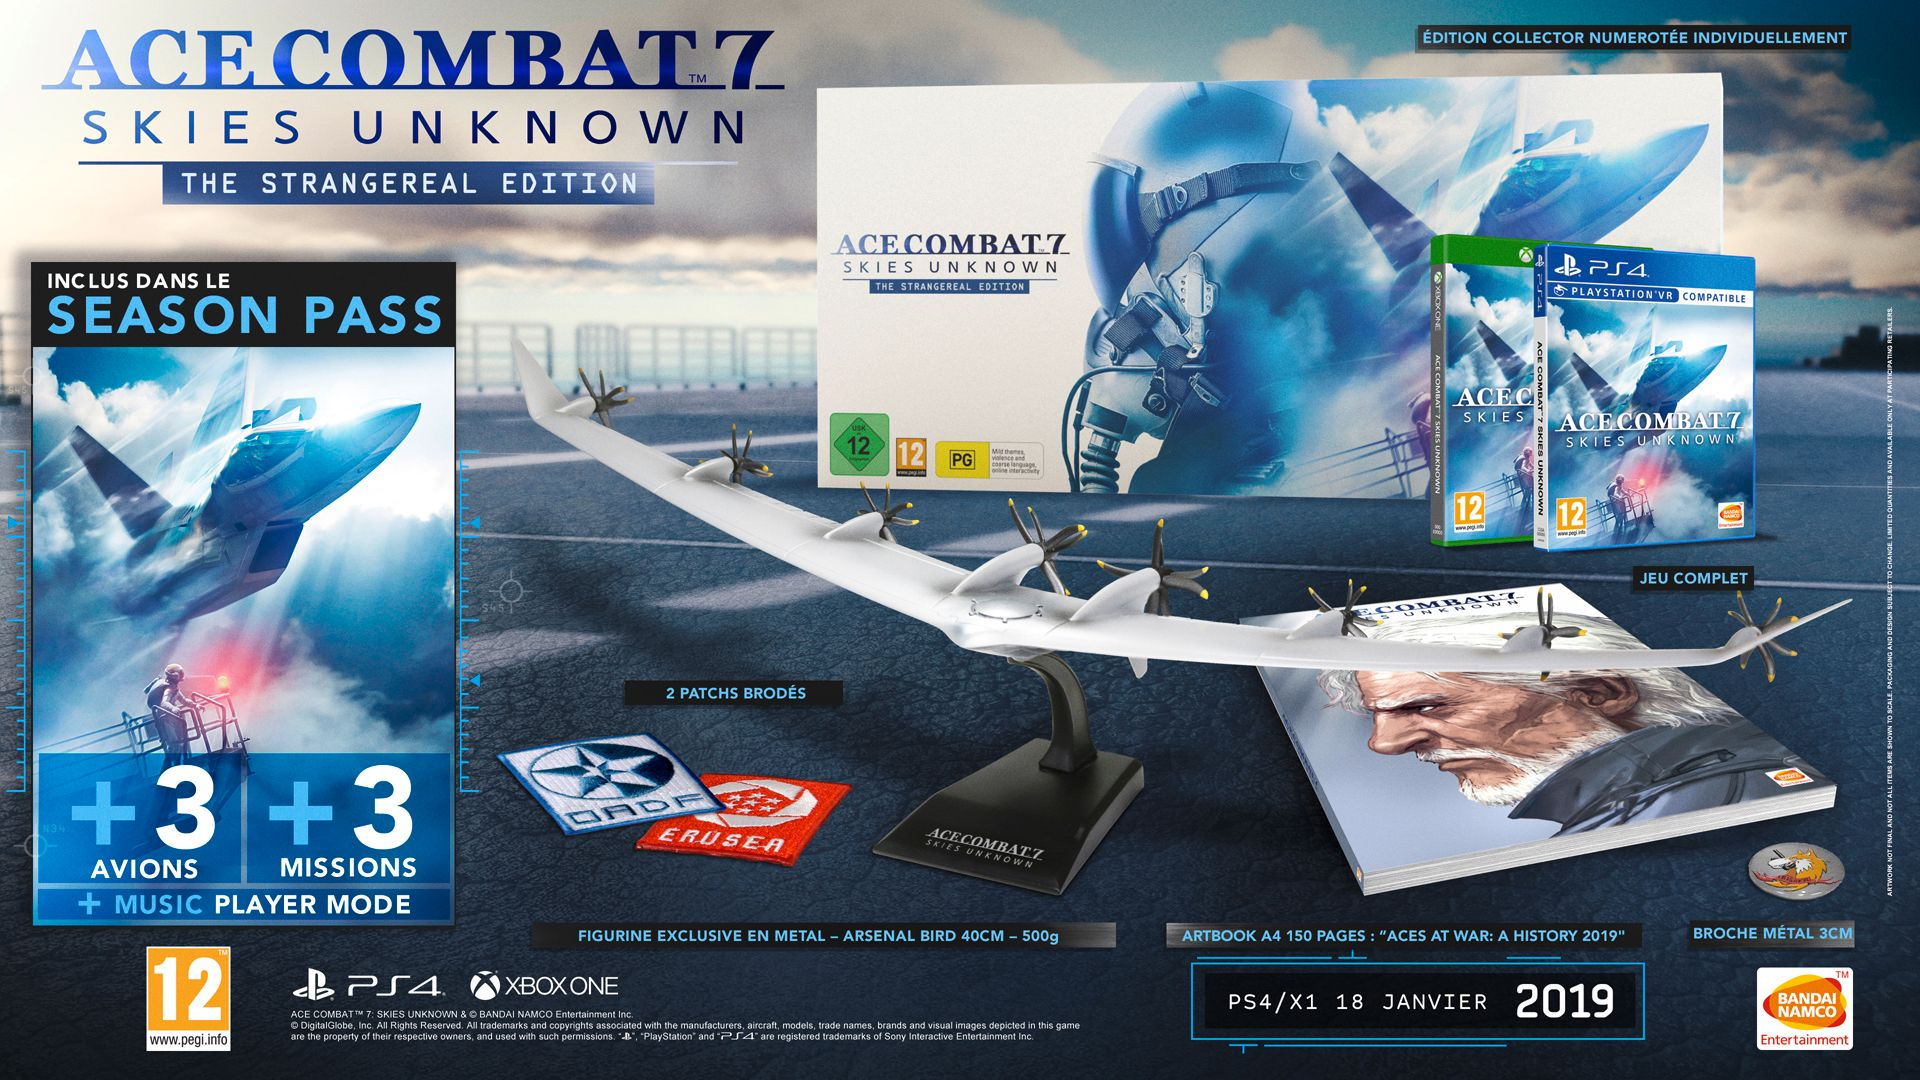 Ace Combat 7 - Edition Collector